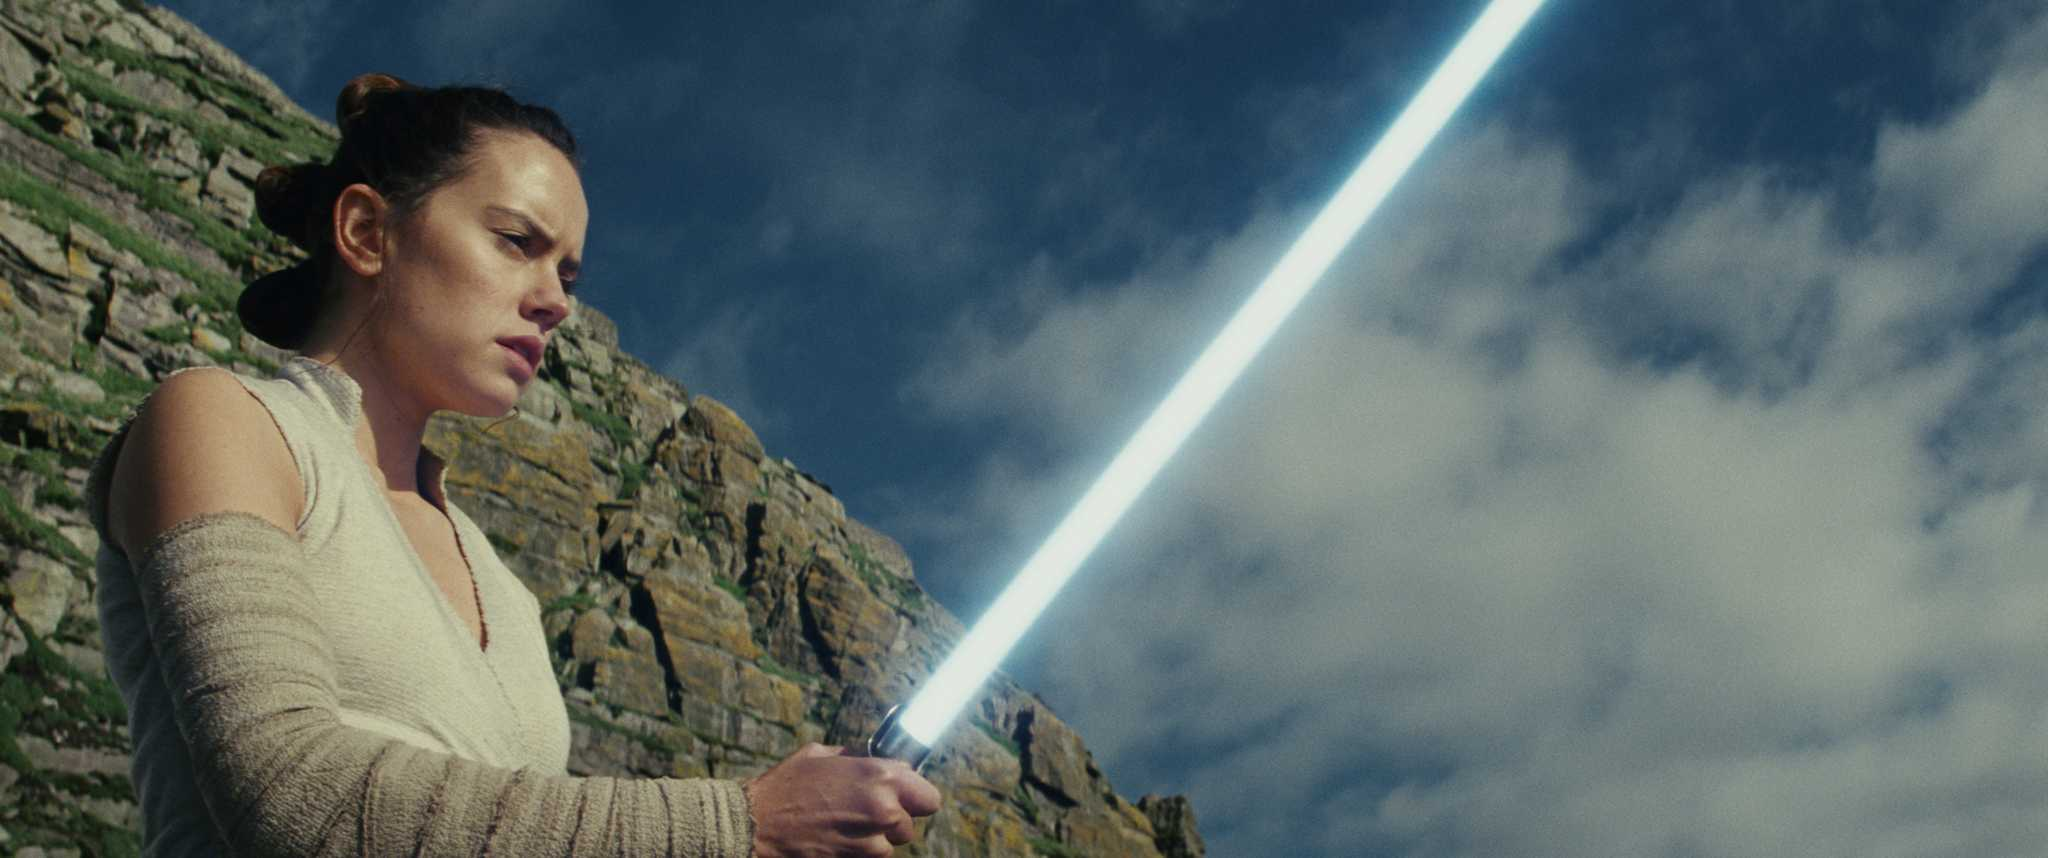 The science of 'Star Wars'